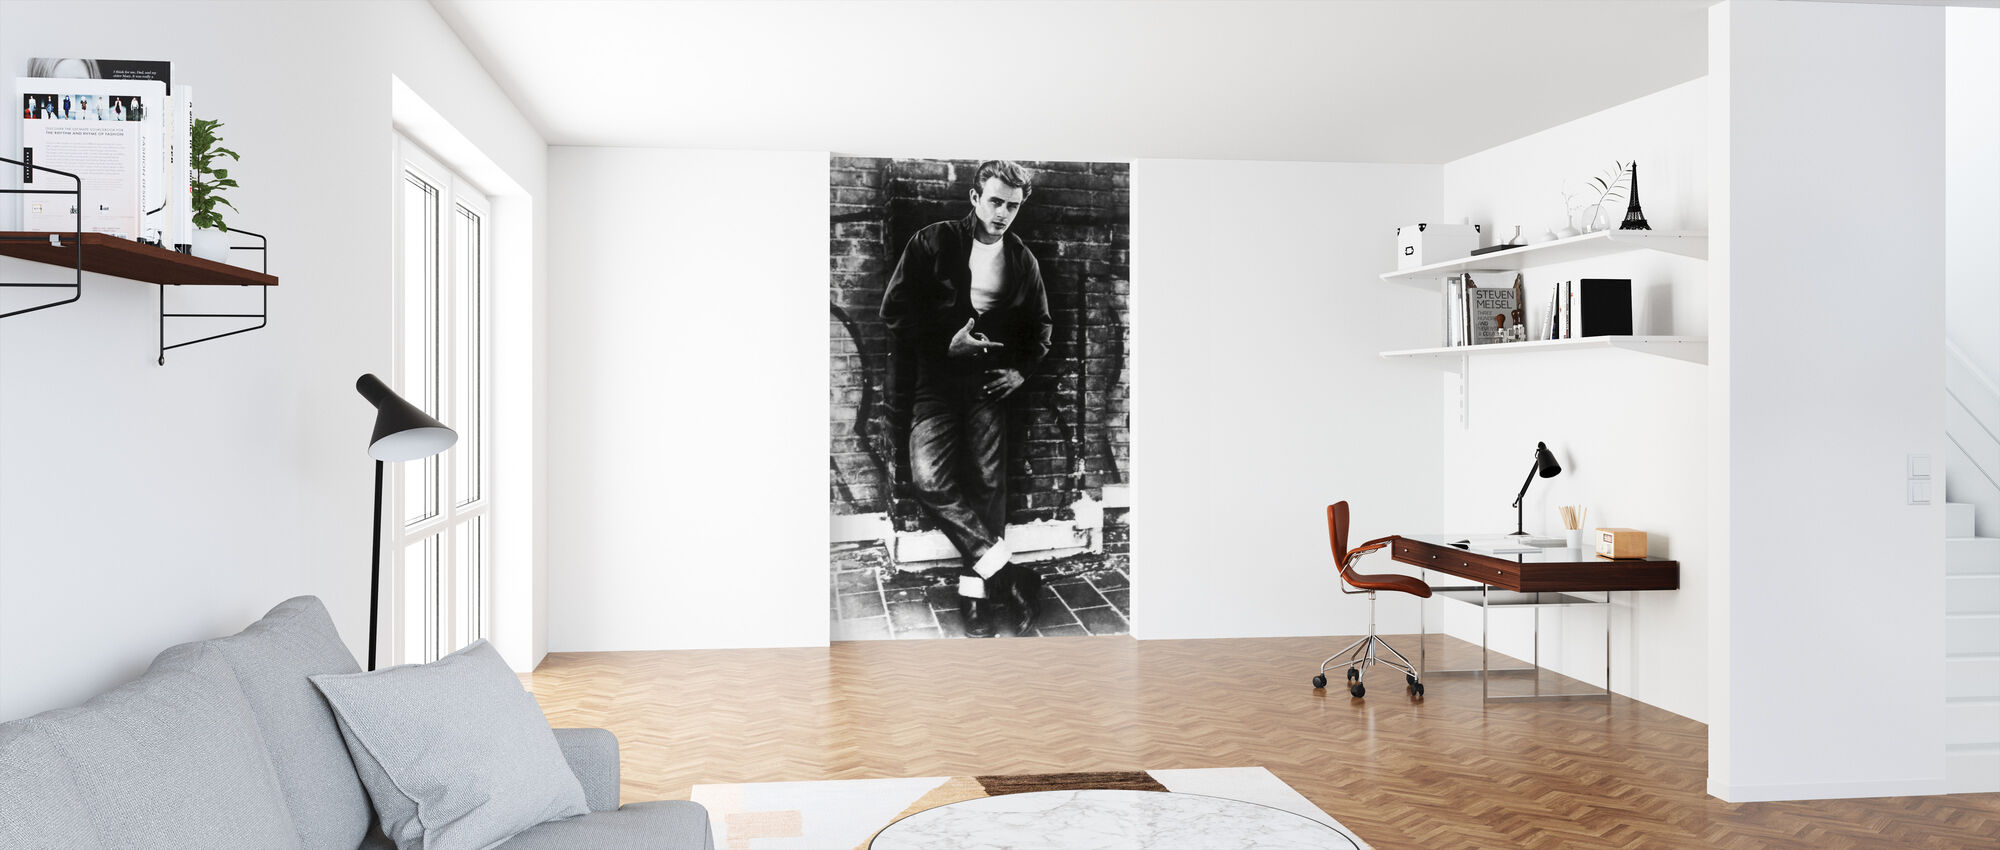 James Dean in Rebel Without a Cause - Wallpaper - Office